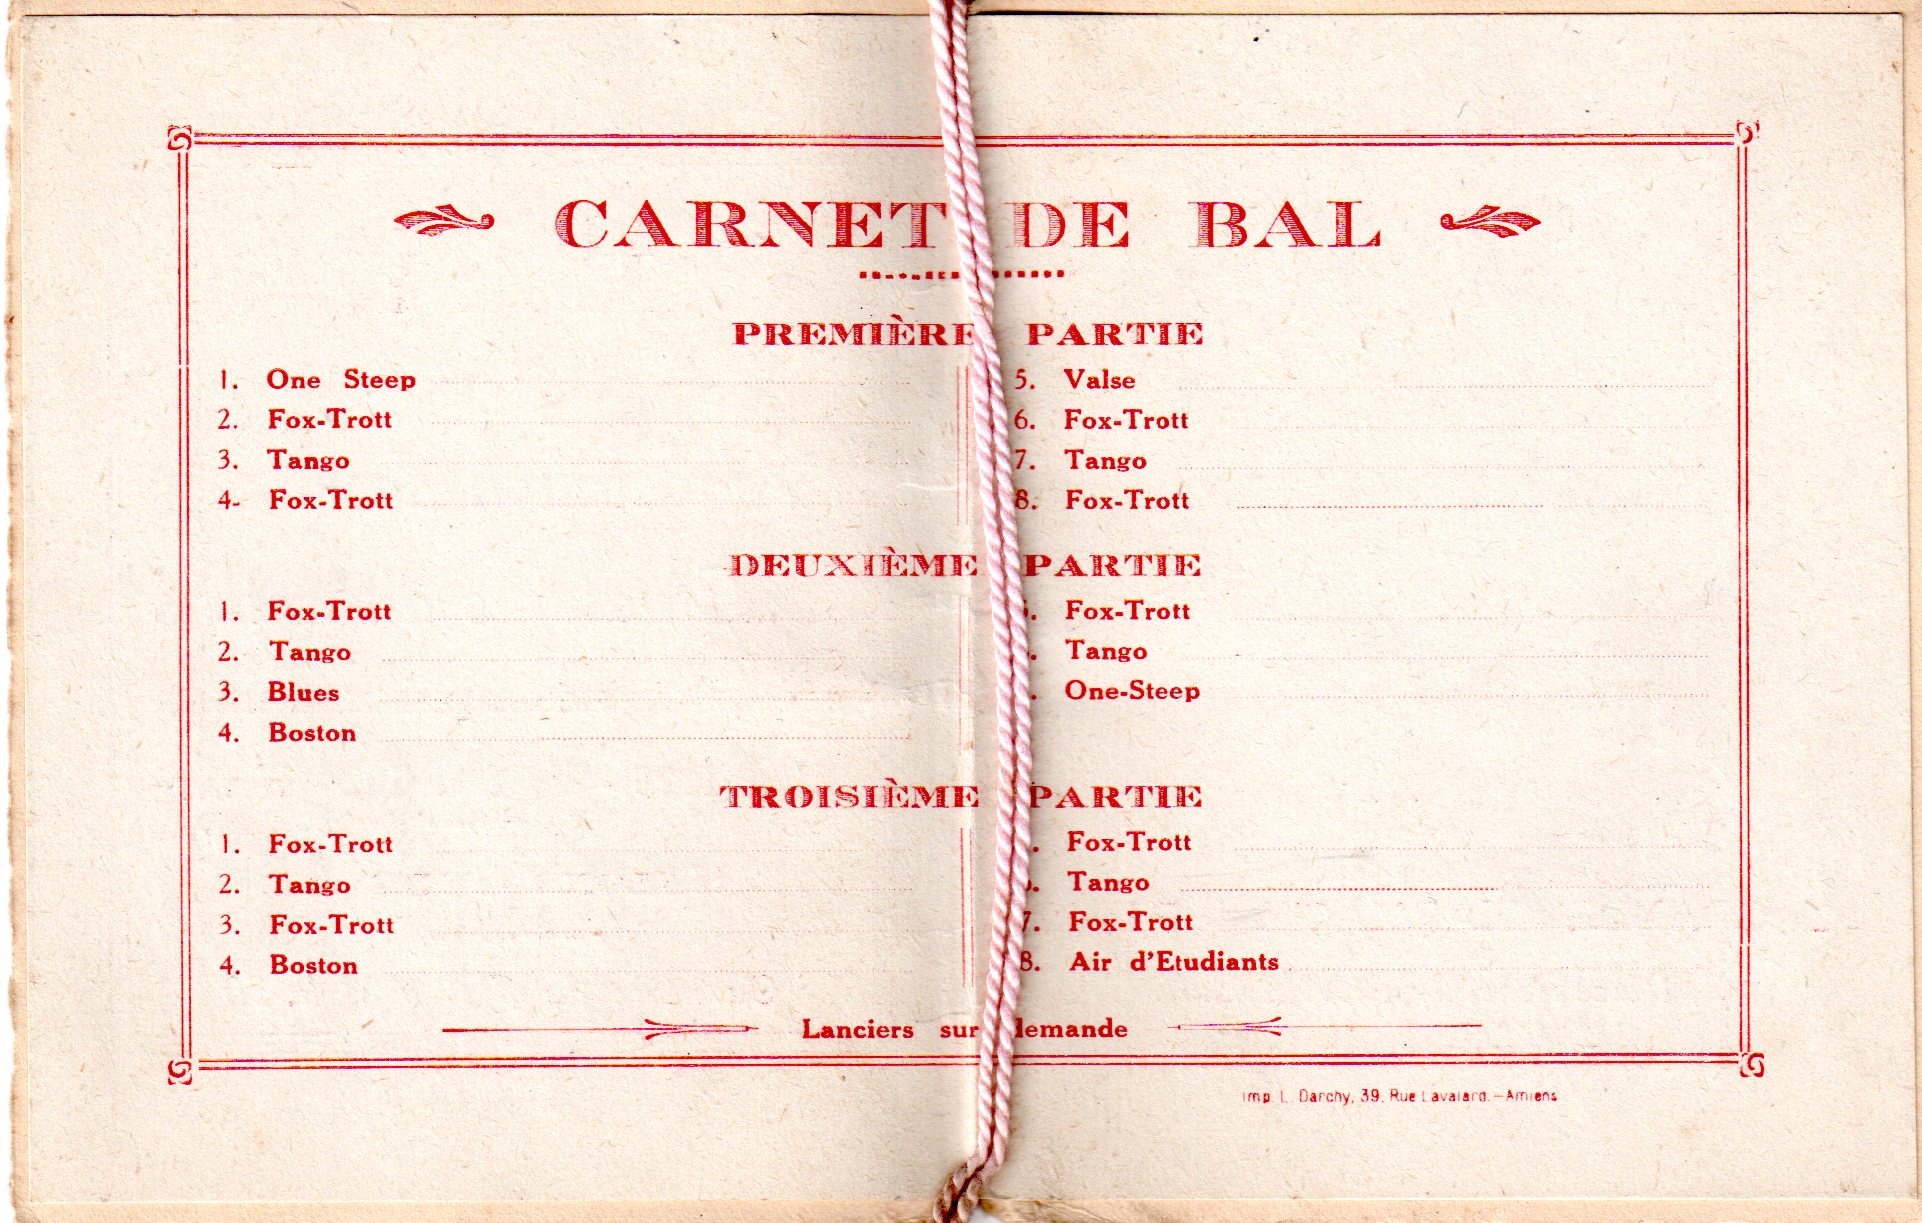 1926 Amiens - Carnet de bal de l'association des étudiants en pharmacie